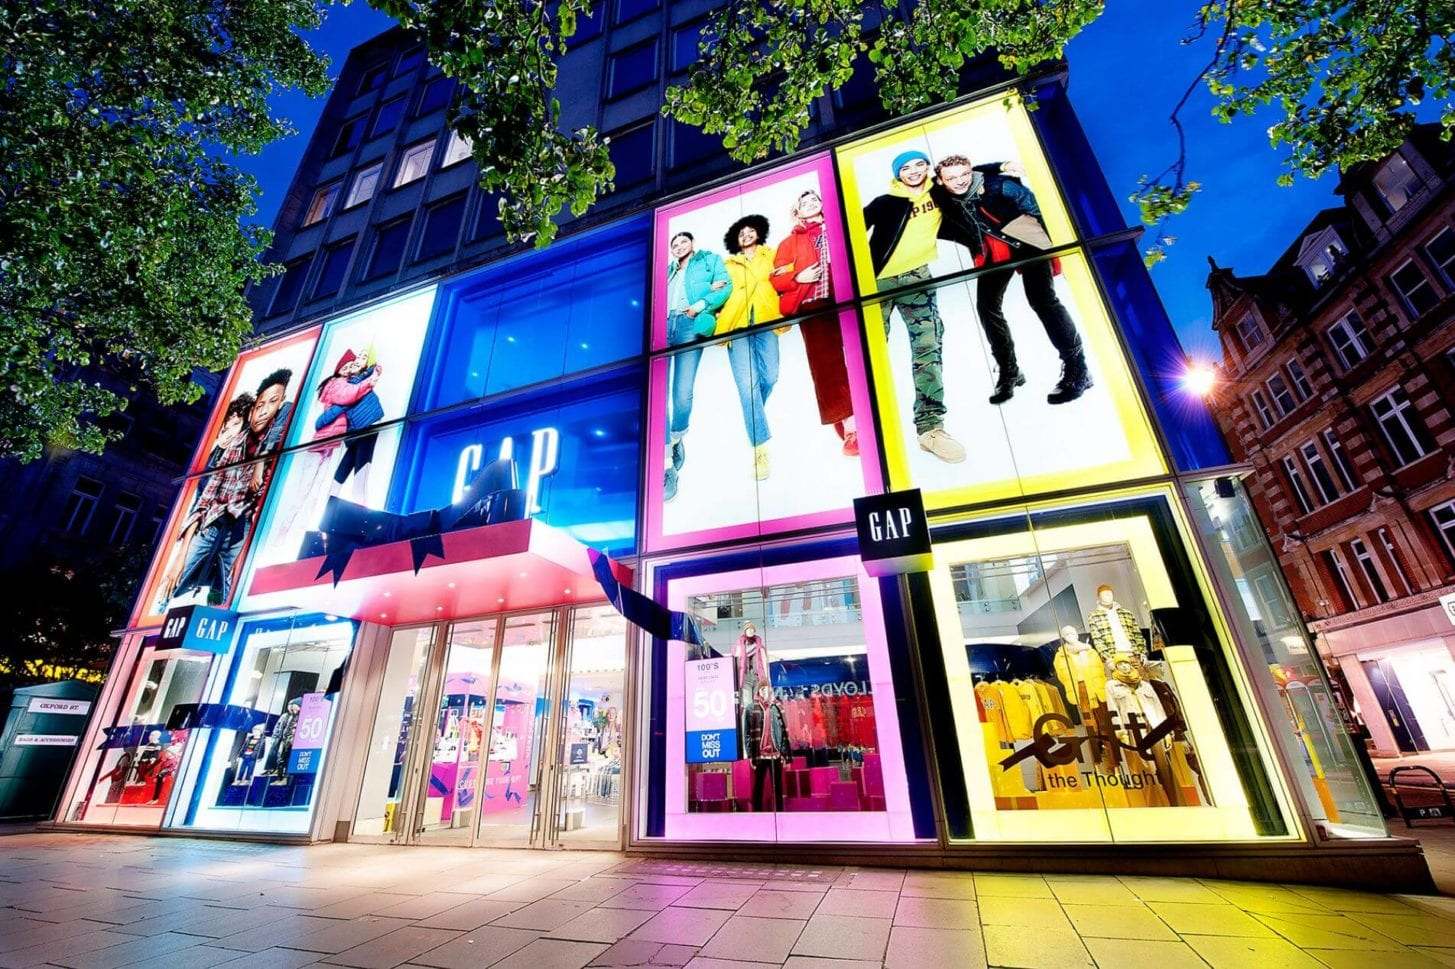 gap london retail window display